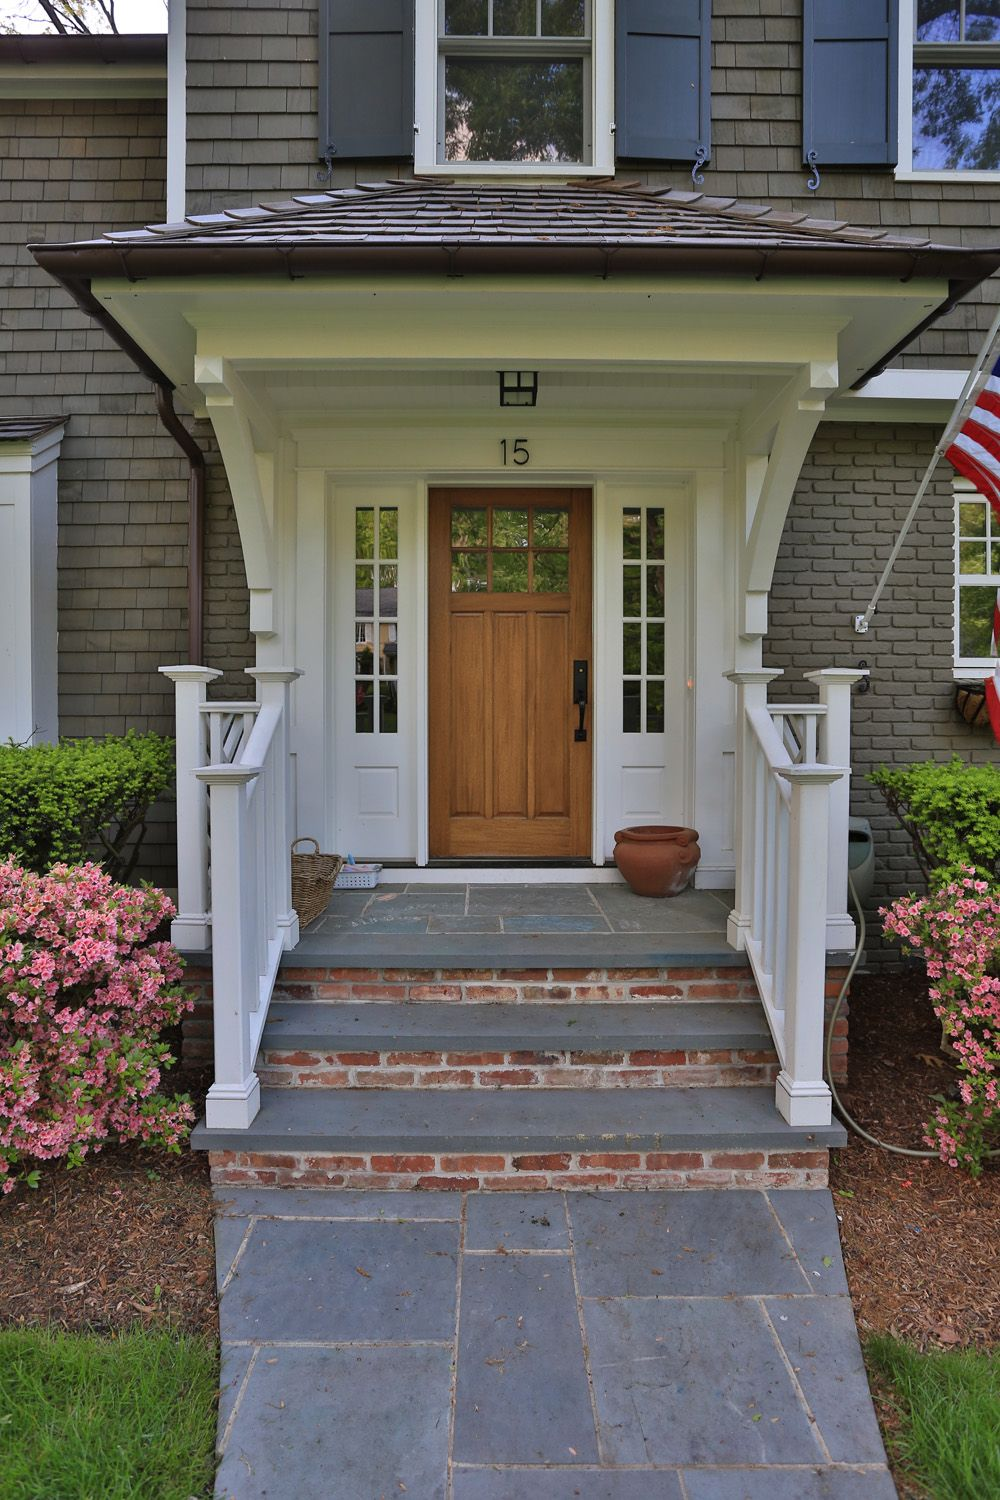 Bluestone brick front entrance steps masonry patios porches pinterest front entrances - Home entrance stairs design ...